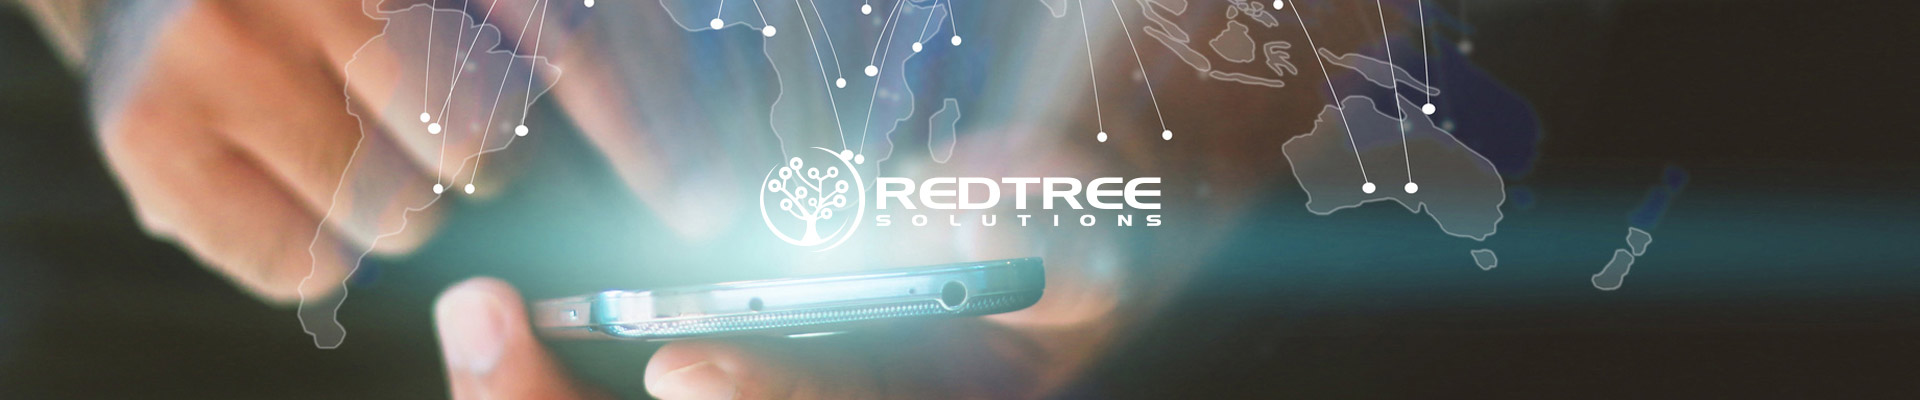 s-redtree-communication